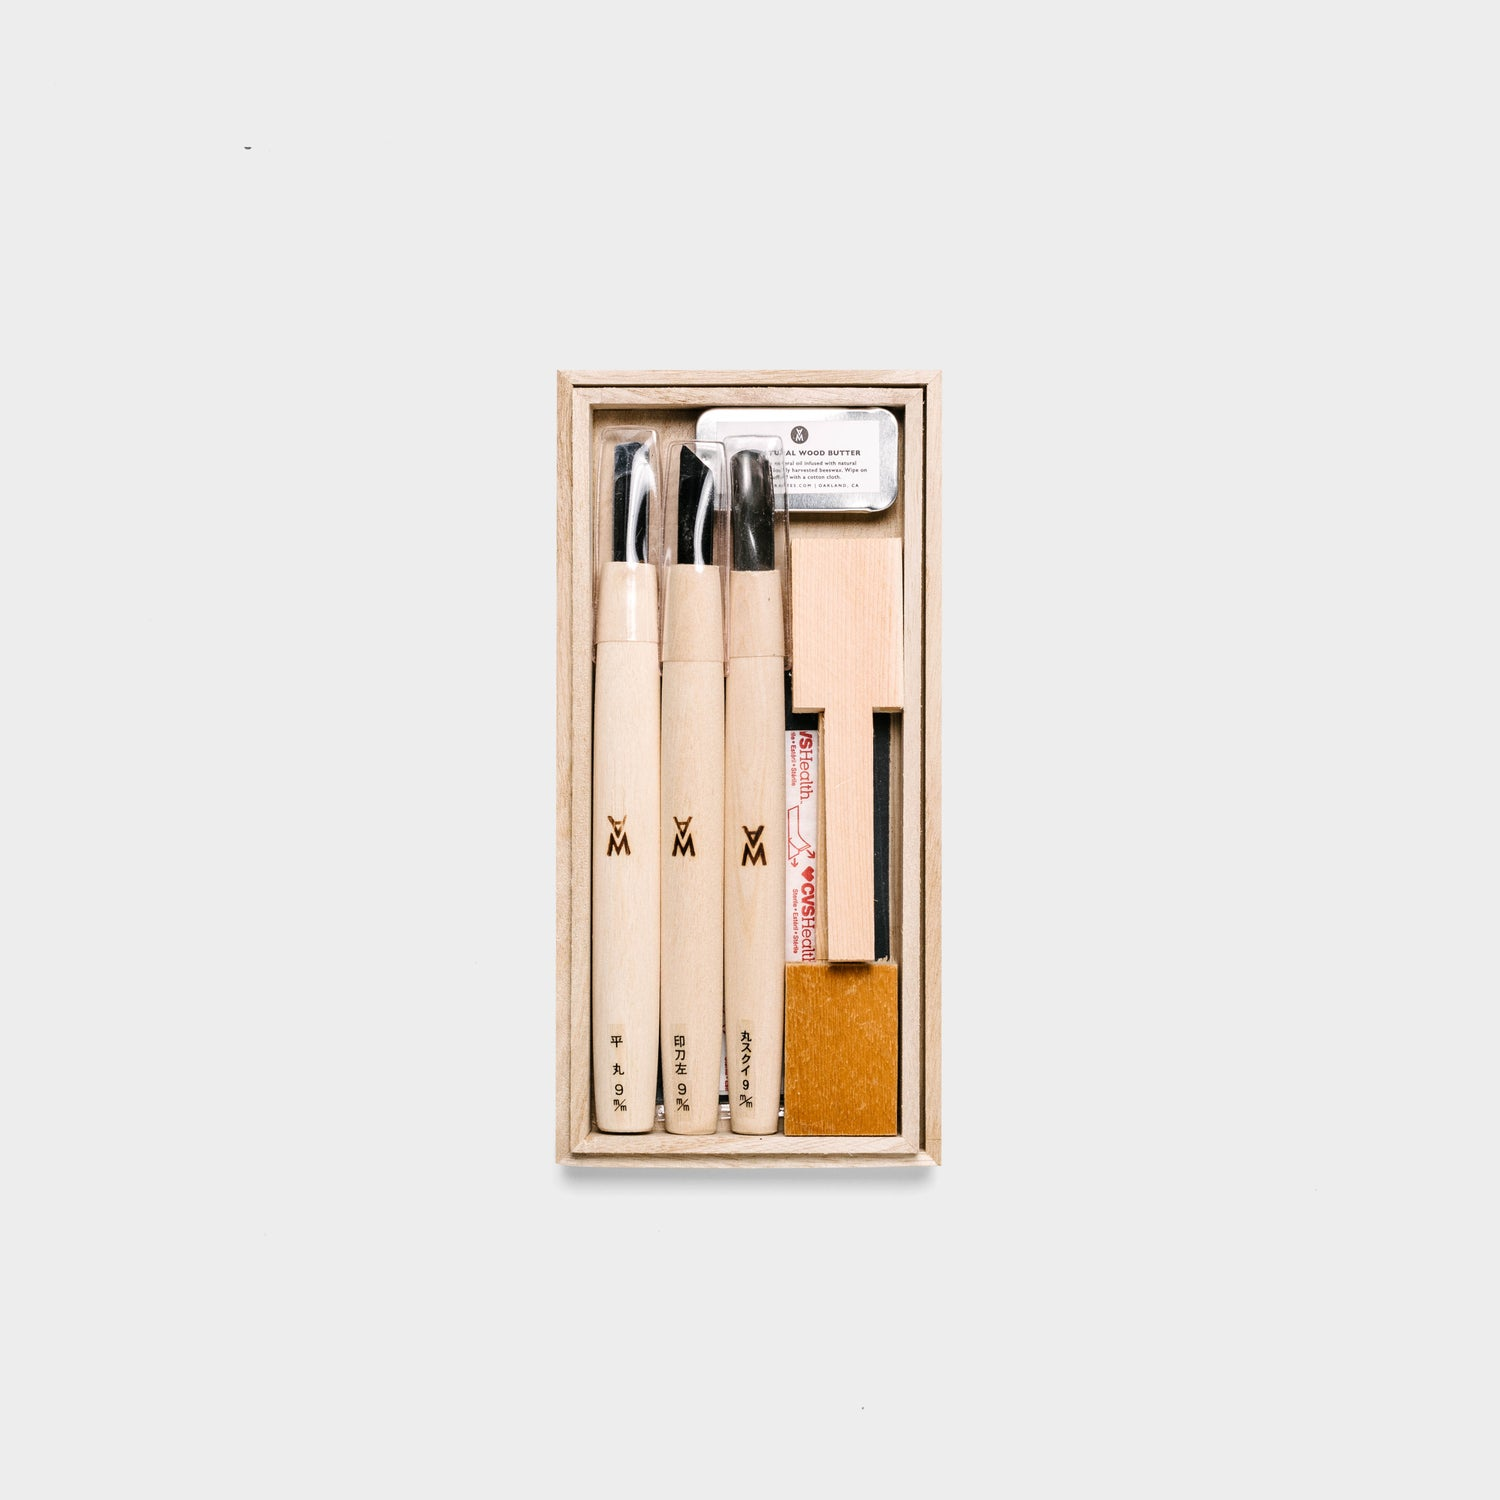 Image of Beginner Carving Kit (Pre-Order)